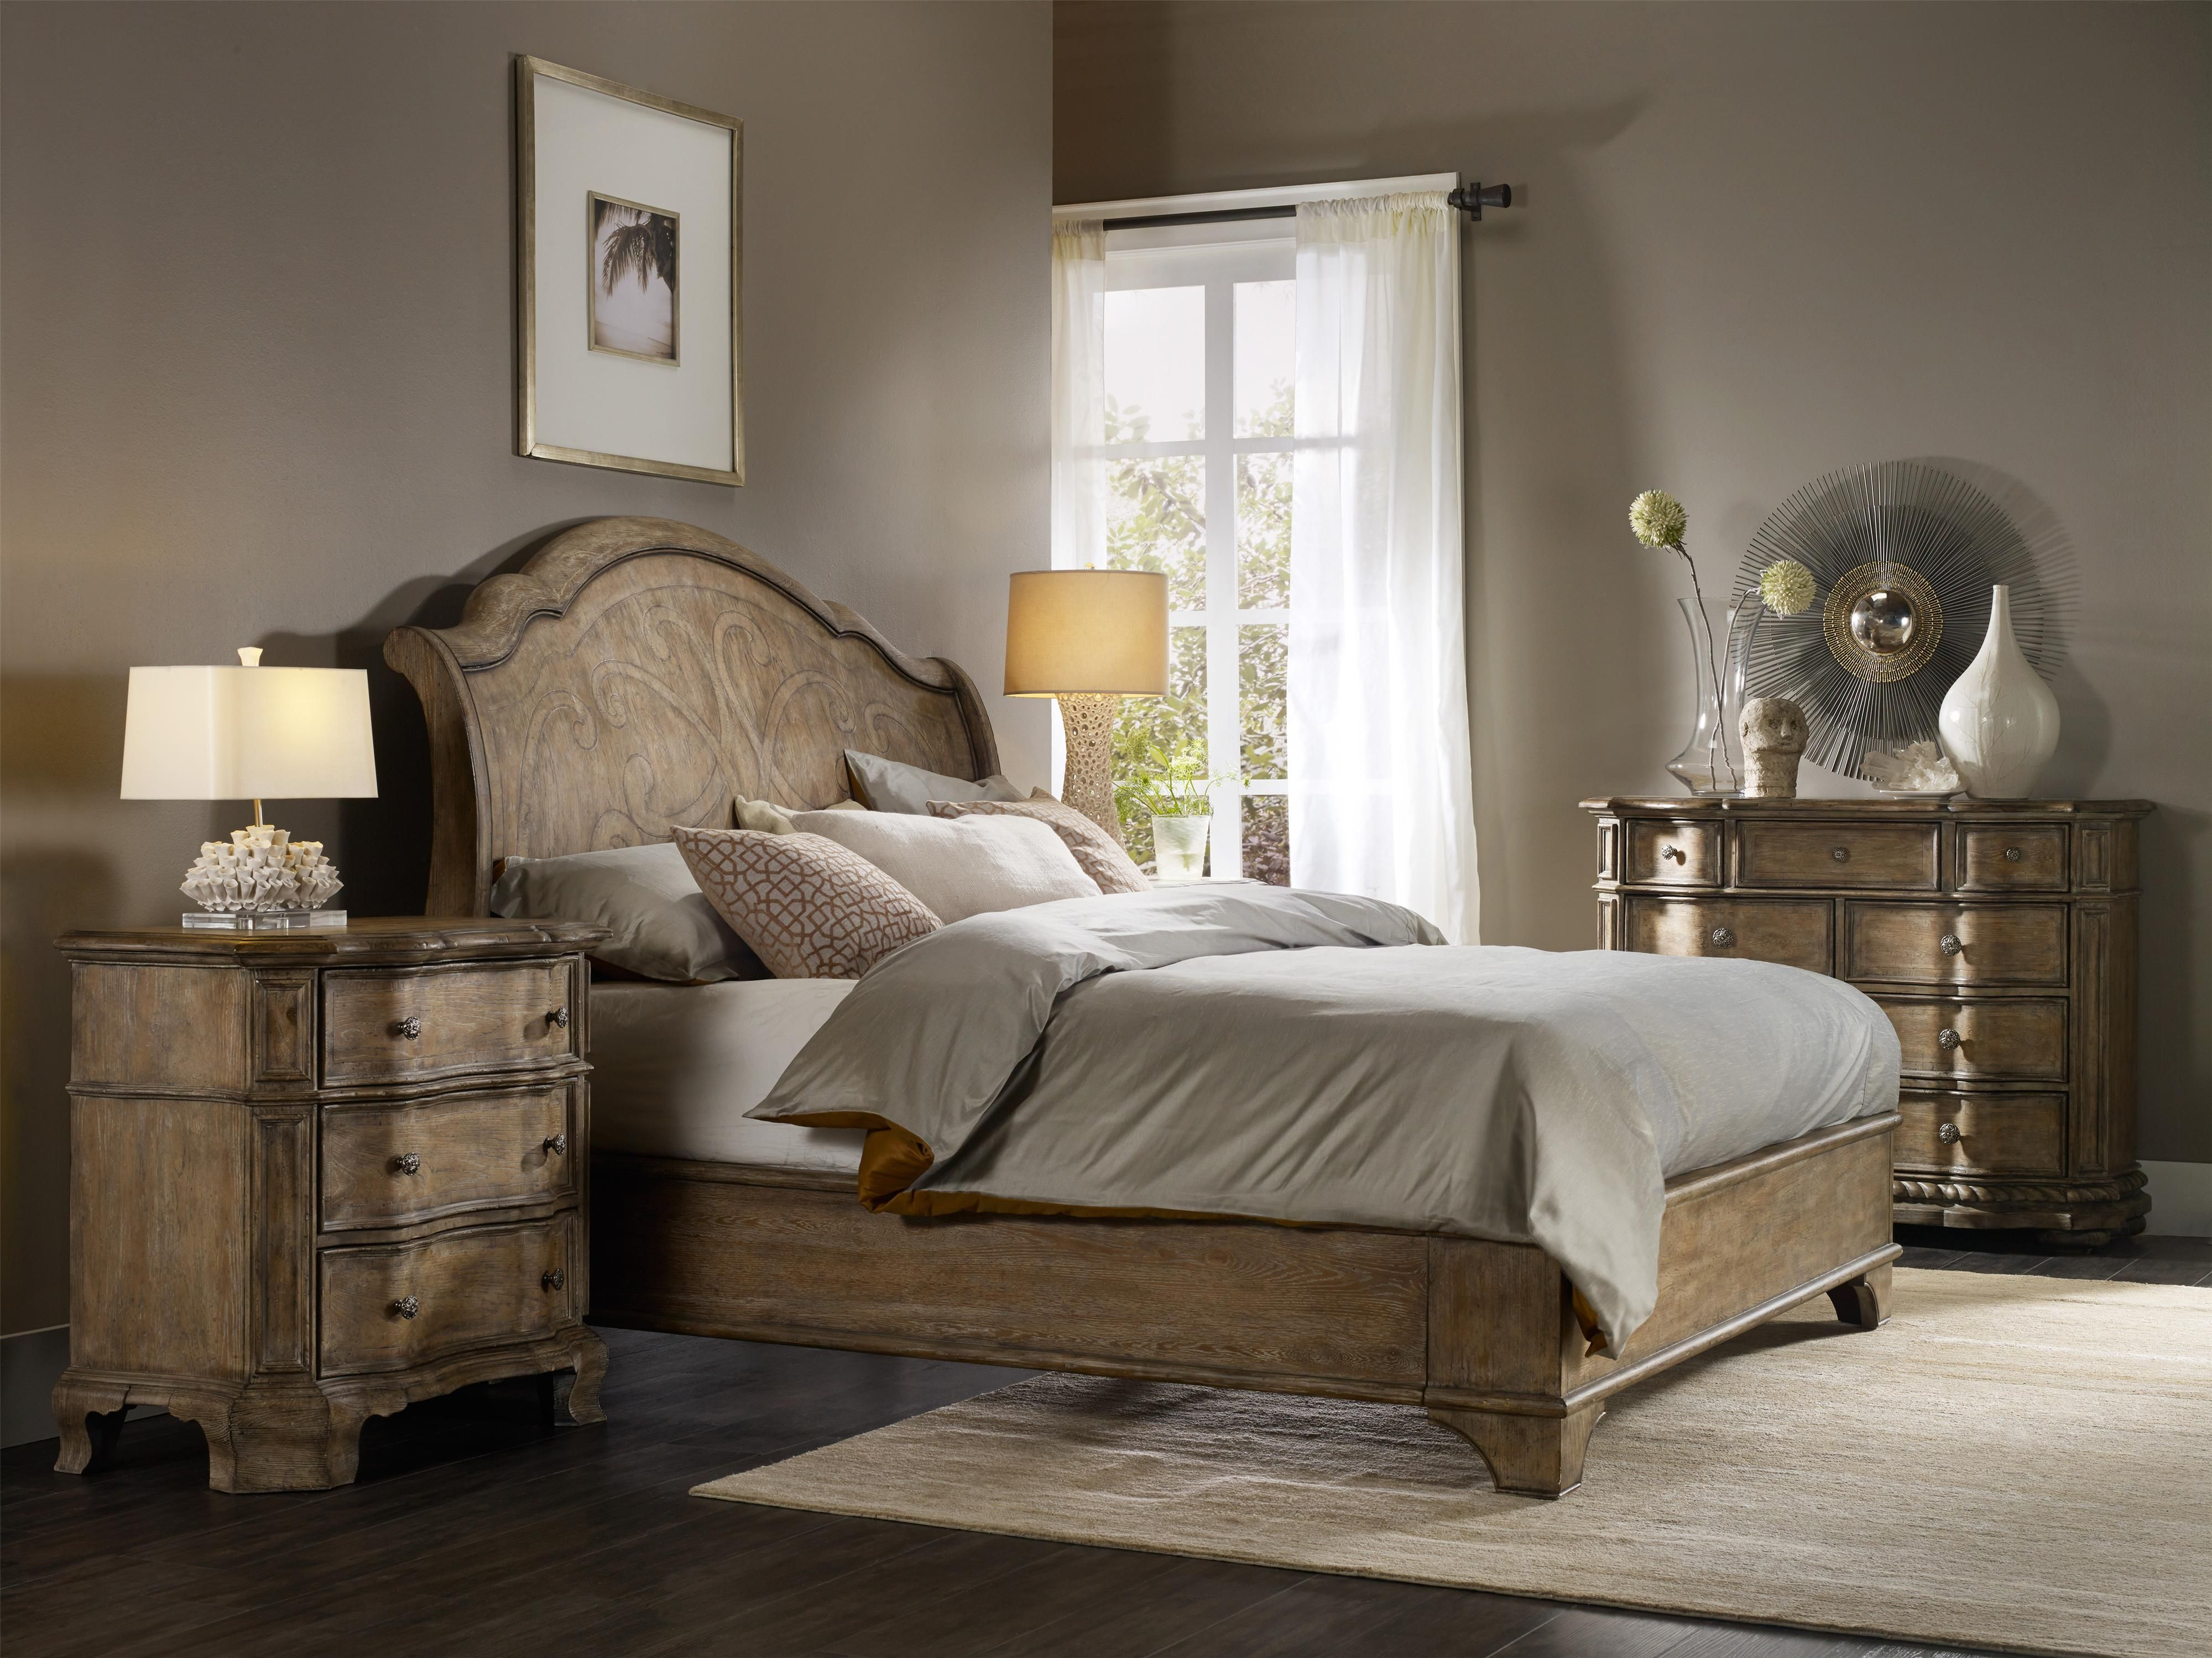 Solana Queen Bedroom Group 3 by Hooker Furniture   New house ...